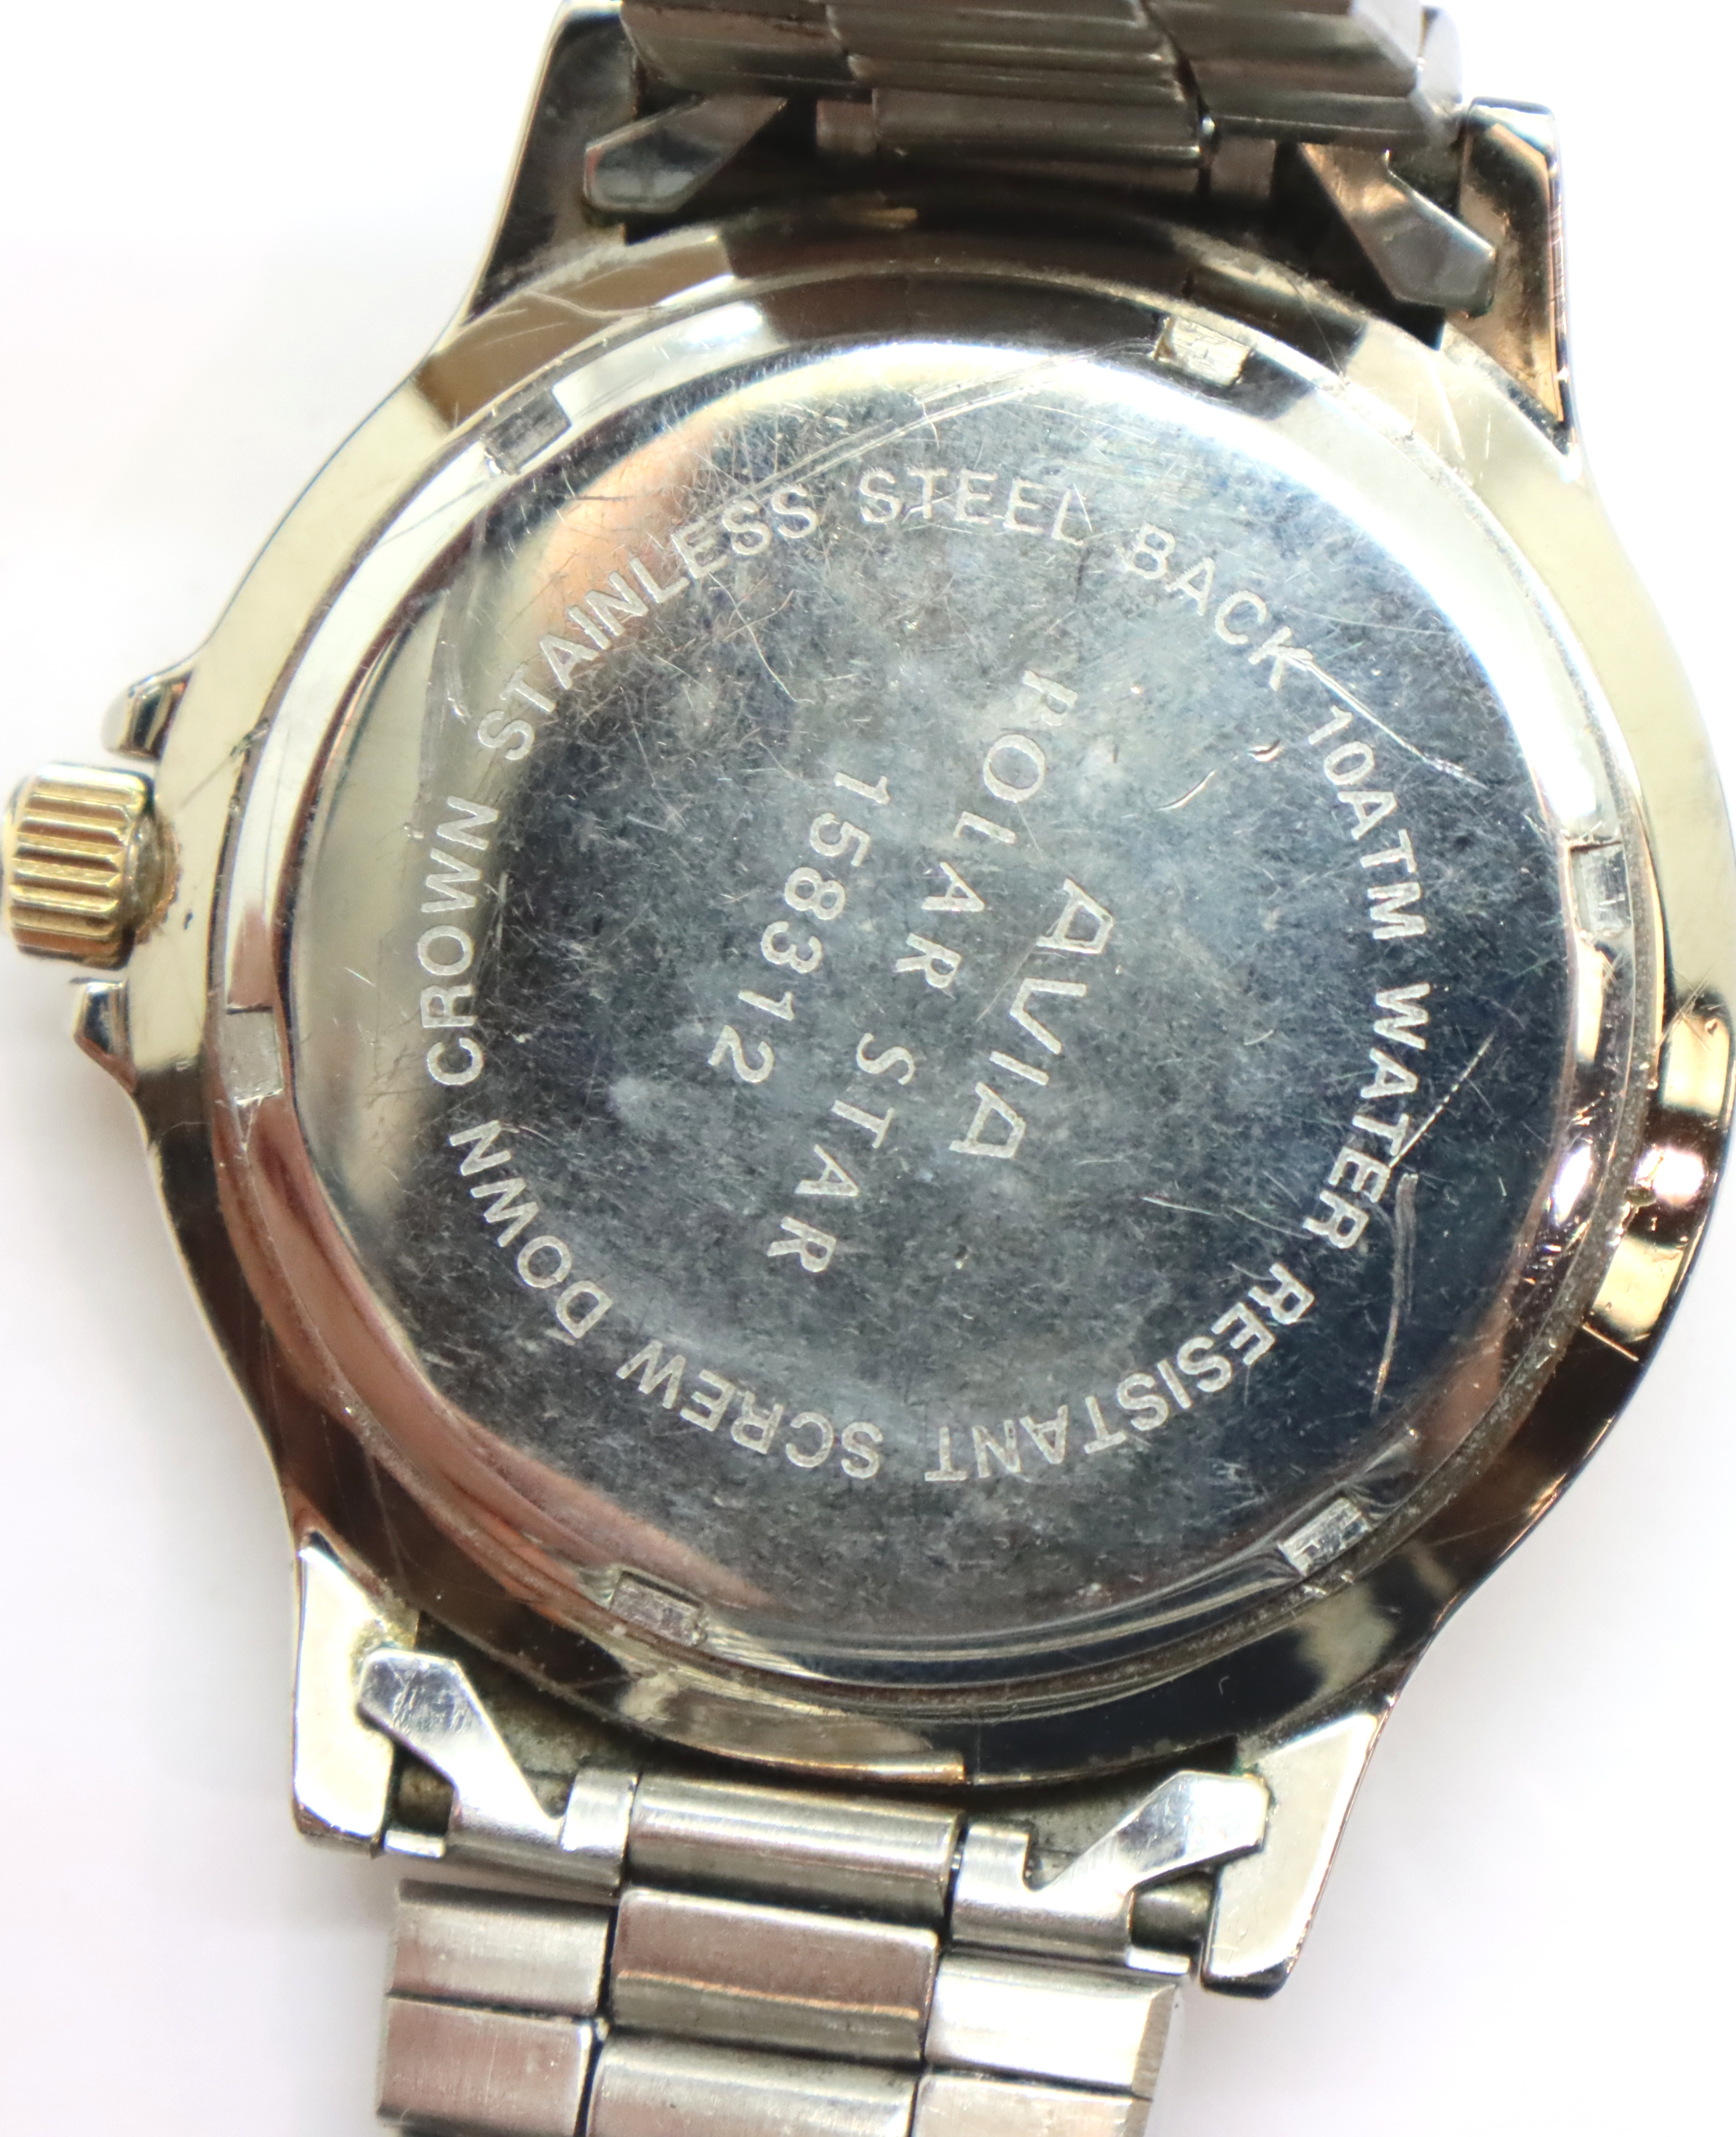 Gents Avia wristwatch, D: 3 cm. P&P Group 1 (£14+VAT for the first lot and £1+VAT for subsequent - Image 2 of 3